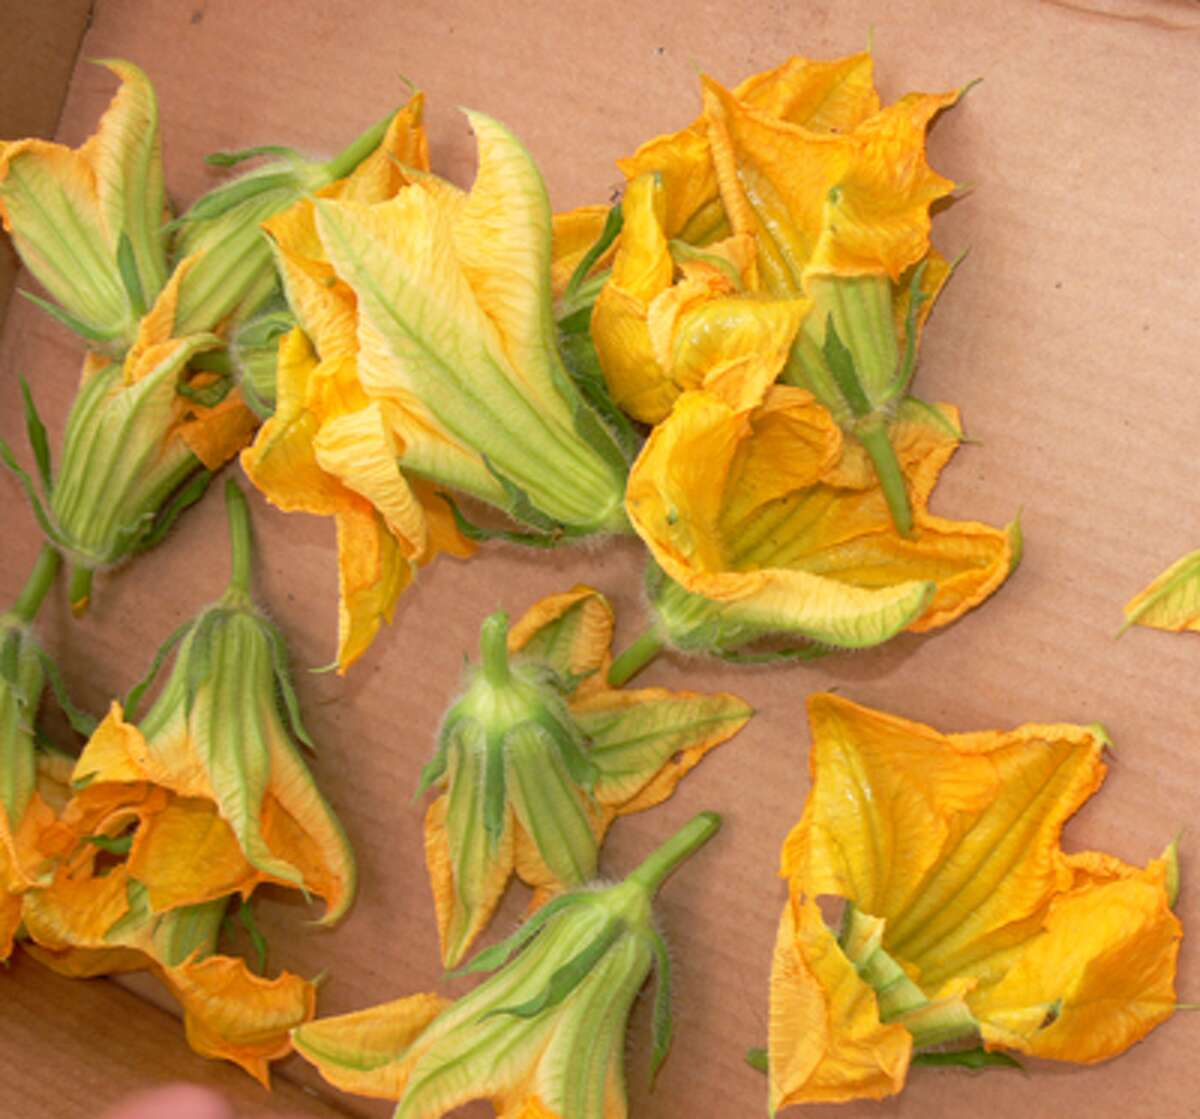 A close-up view of the squash blossoms being sold by Guy's Eco-Garden, run by Guy Beardsley in the city's White Hills section.